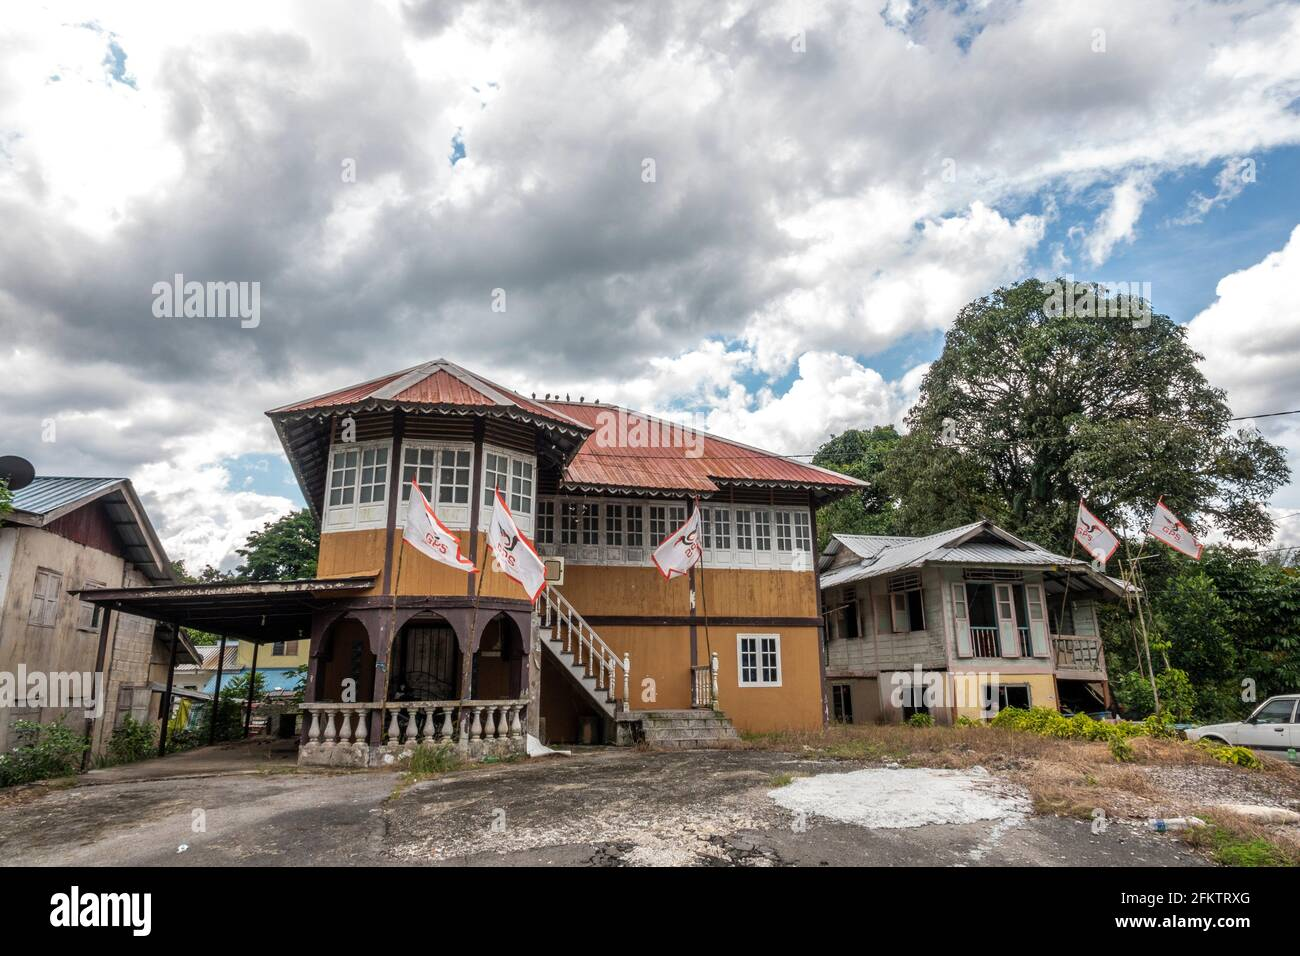 Old wooden bungalow house at Buso, Bau, Sarawak, East Malaysia Stock Photo